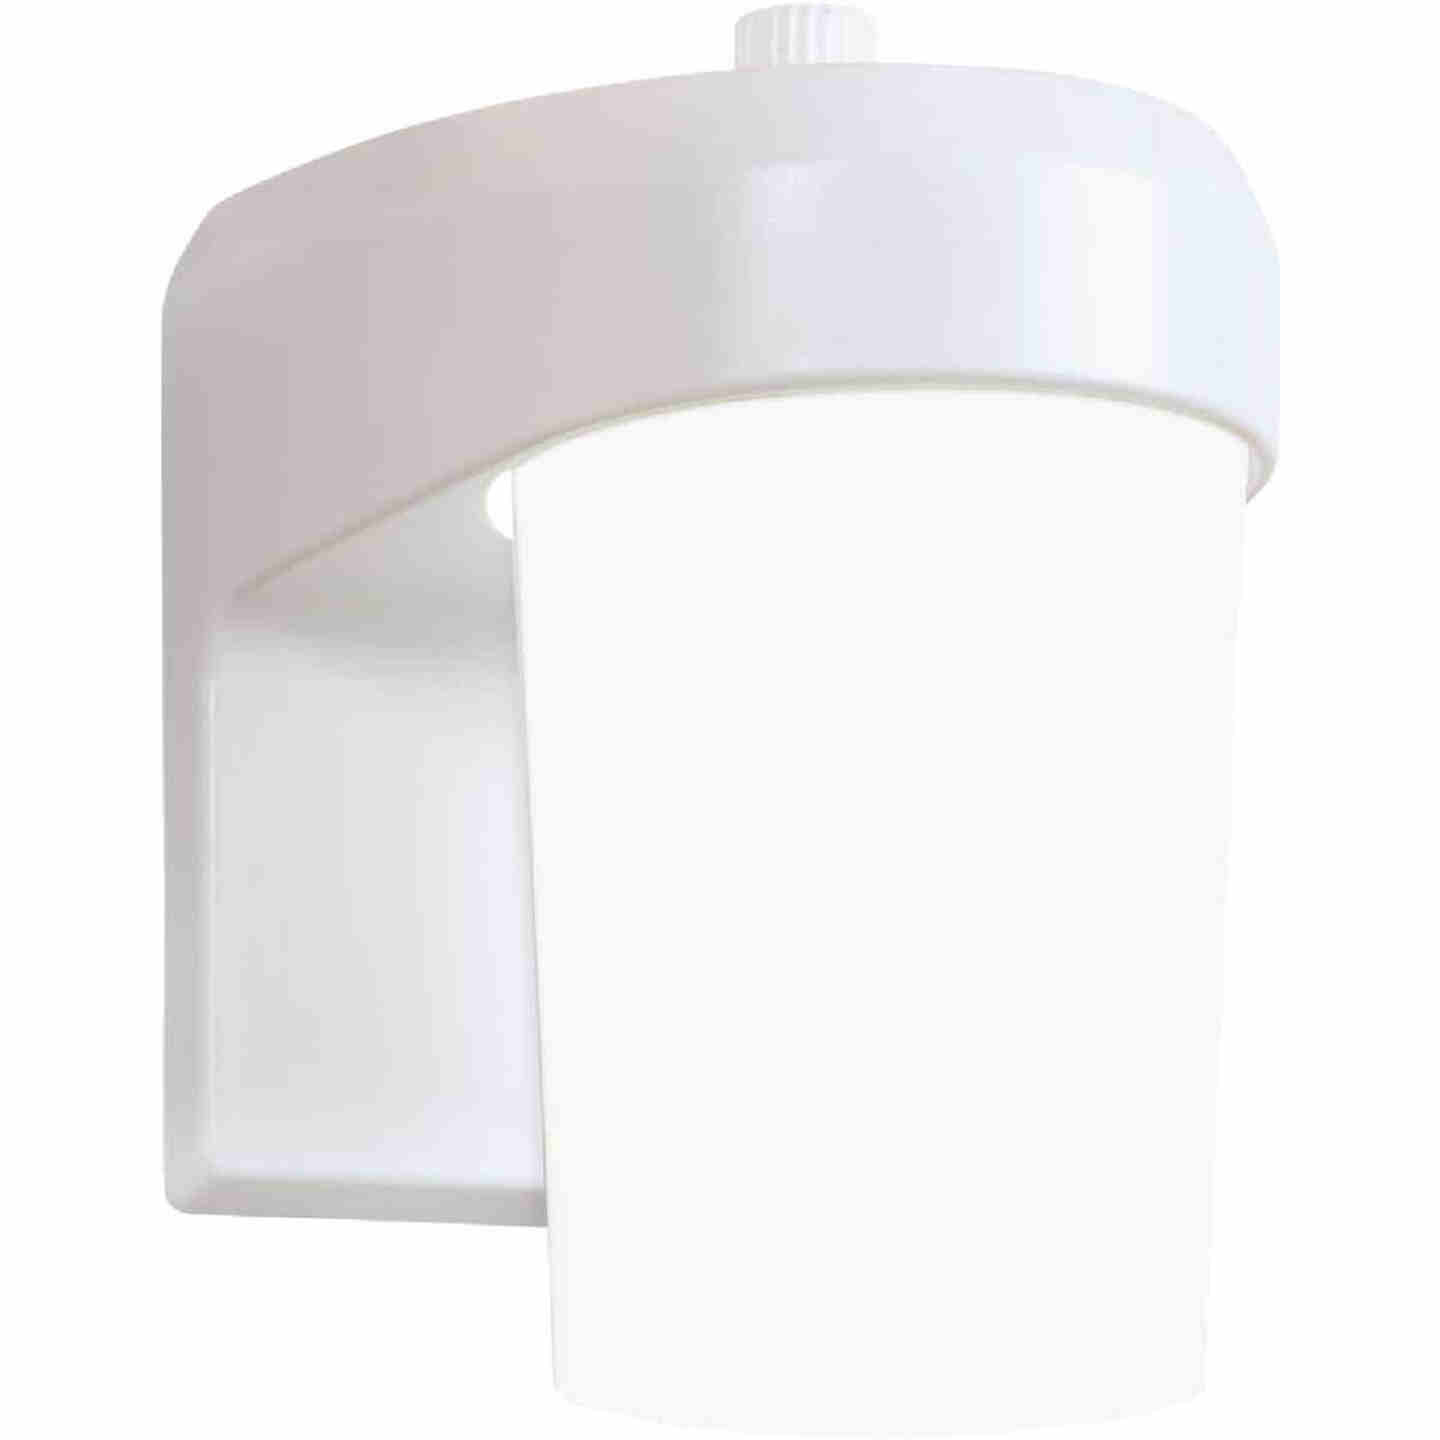 Halo White Dusk To Dawn LED Outdoor Area Light Fixture Image 1